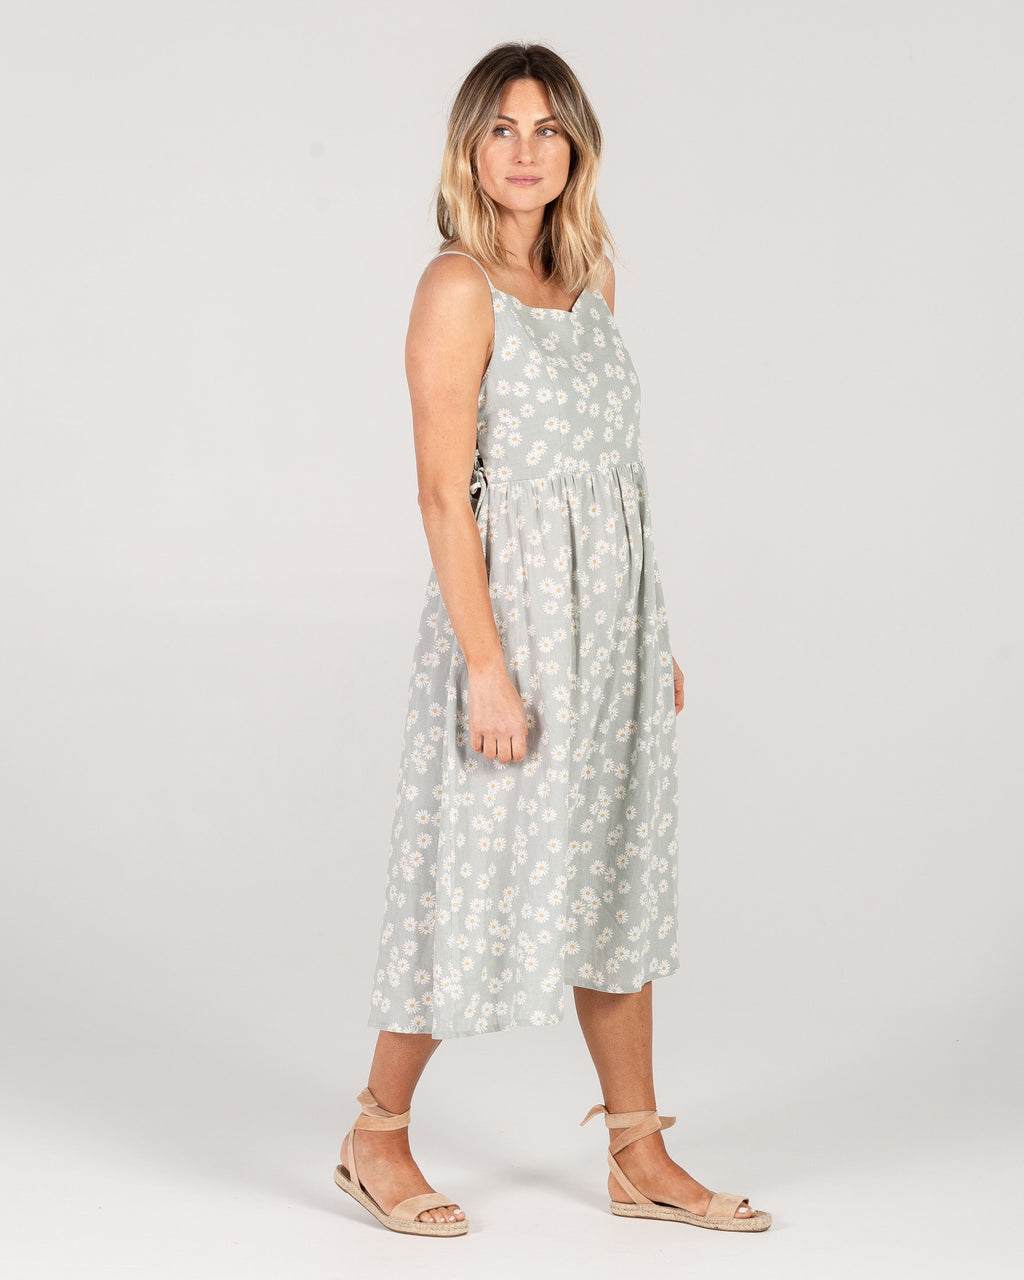 Rylee + Cru - Hometown Collection - Daisy Lacy Dress